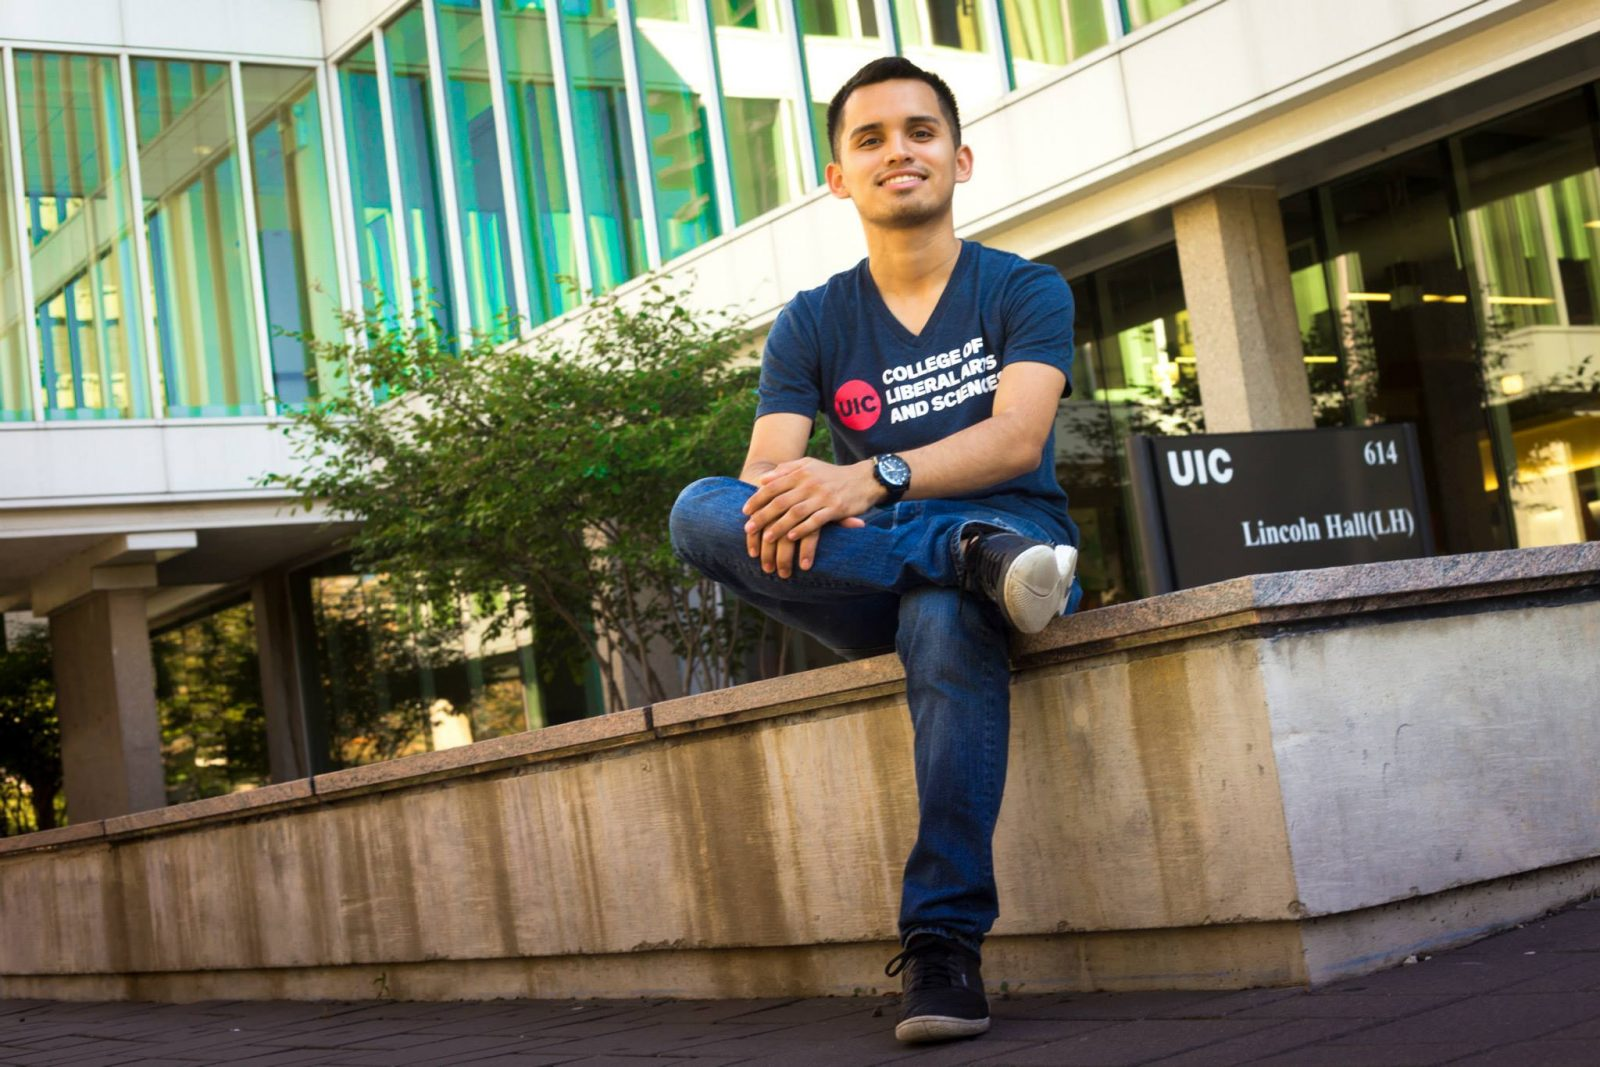 HEAR Graduate Scholar Carlos Montero at his home campus at UIC